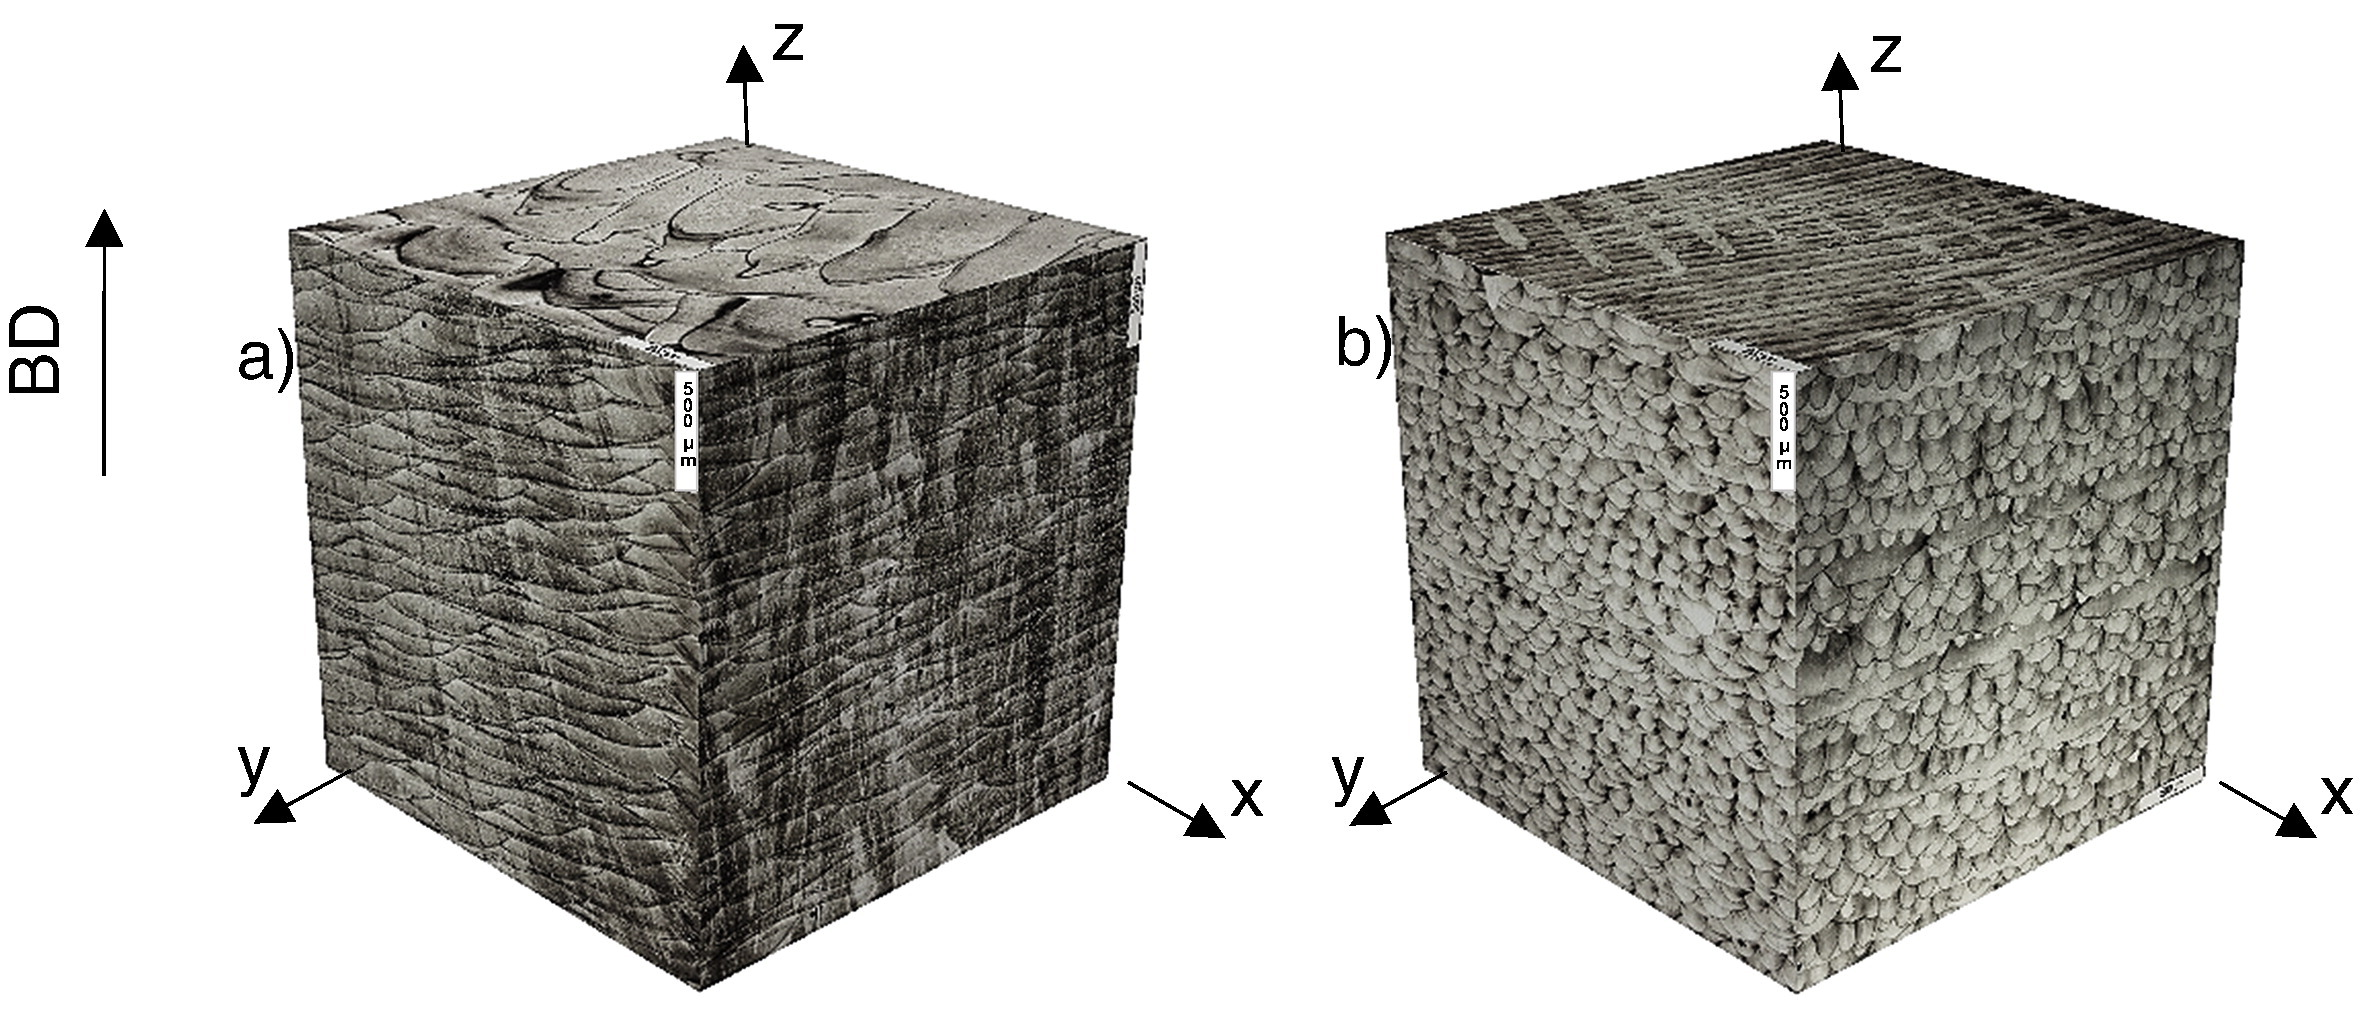 Researchers Obtained a Gradient Microstructure of the Material and Created a Product, Combining Prop